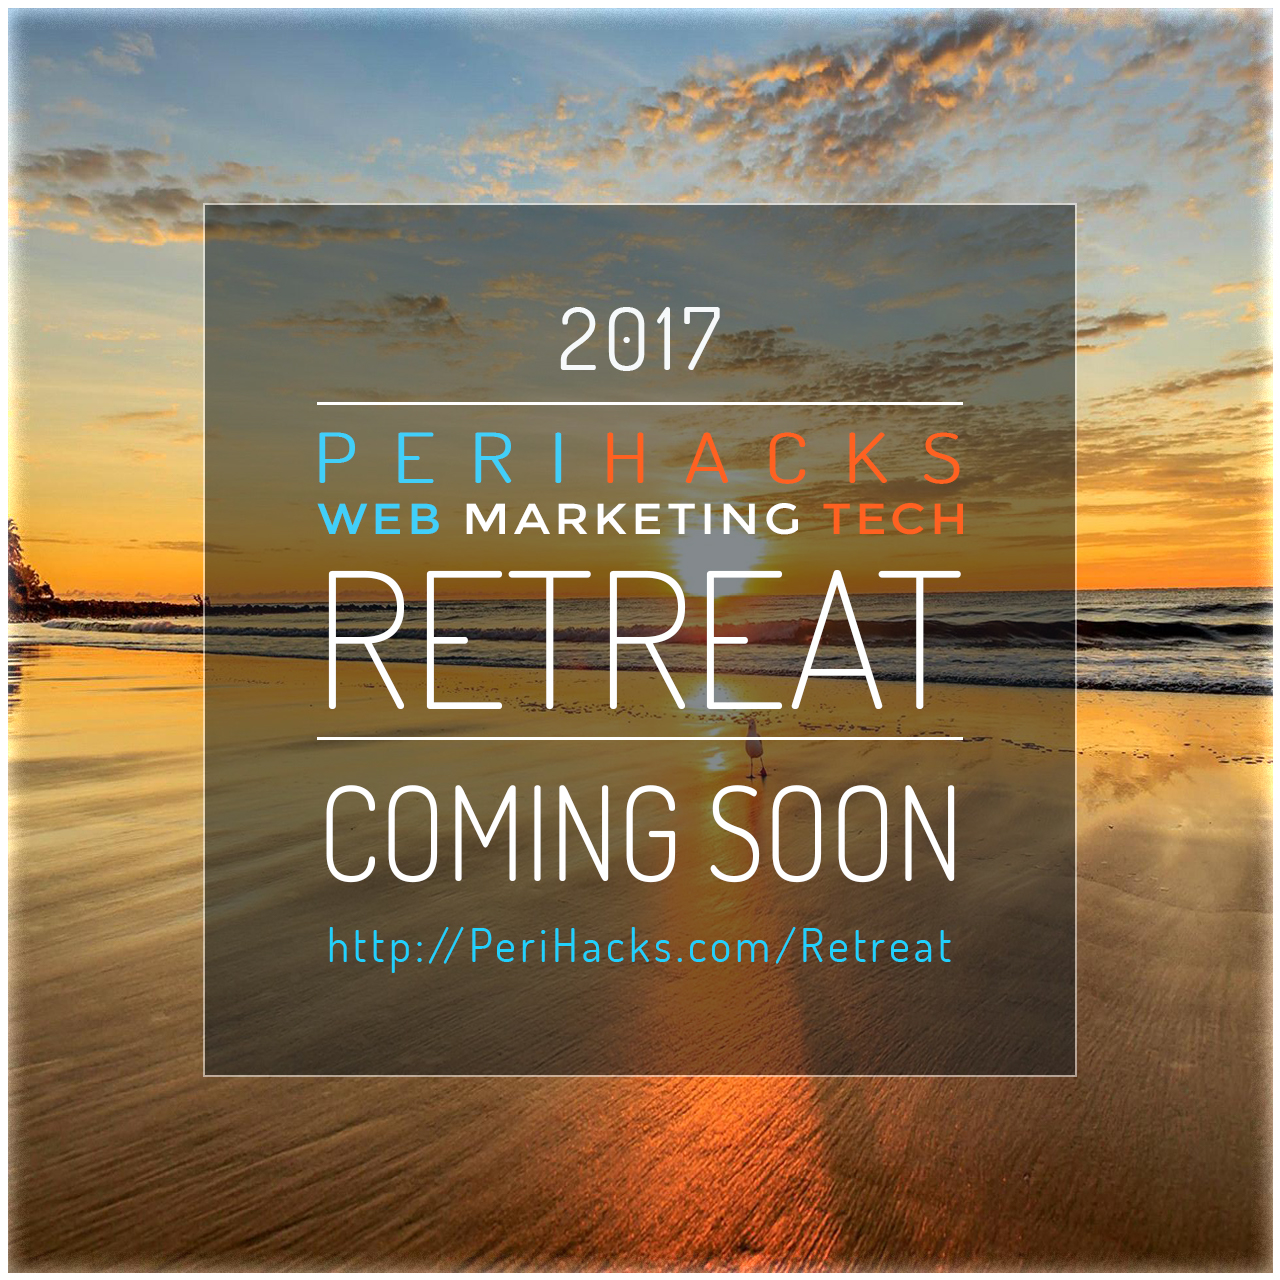 PeriHacks Retreat 2017 coming soon!